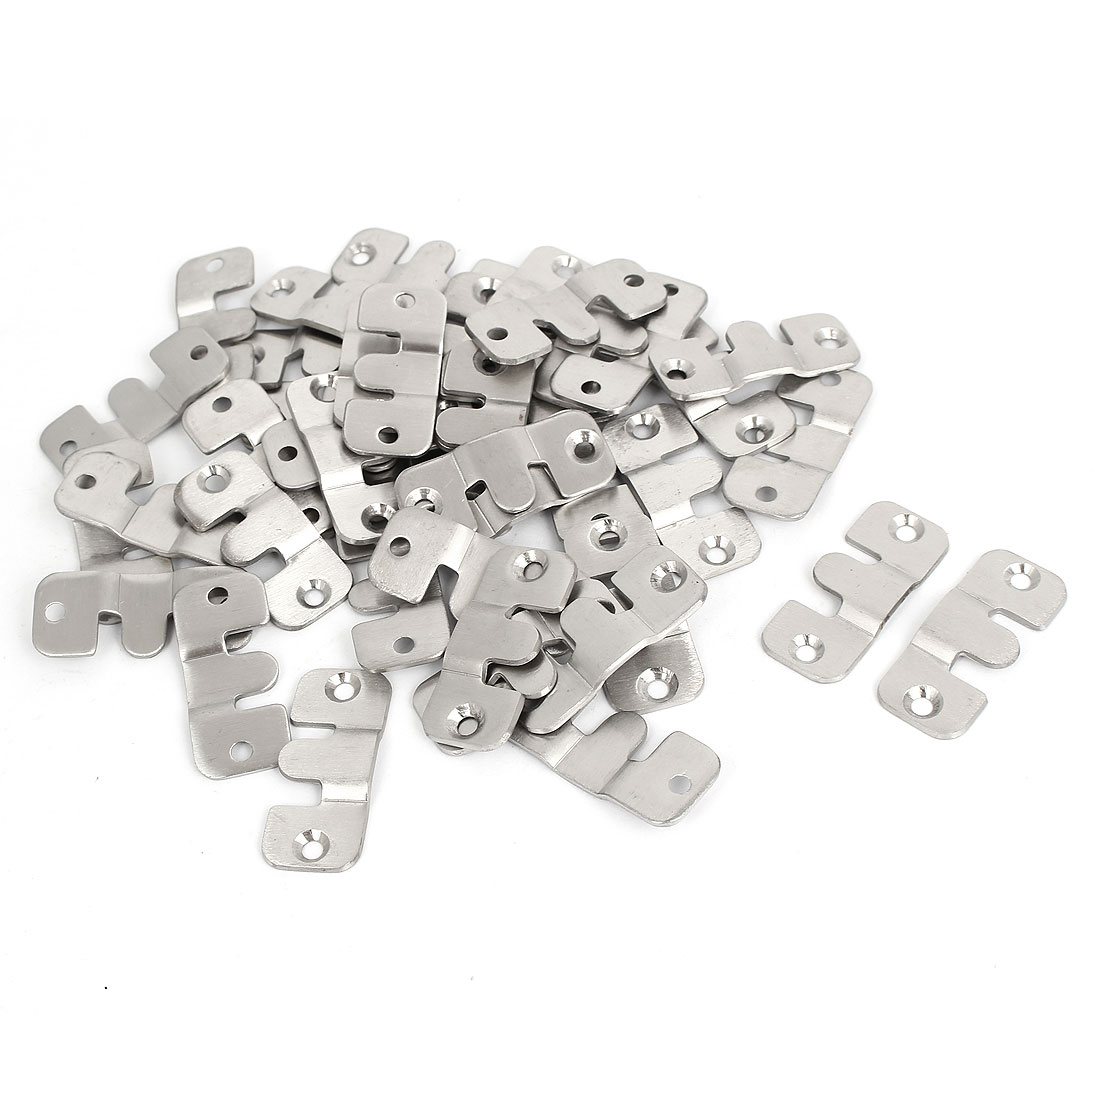 Stainless Steel Universal Sectional Photo Frame Couch Sofa Connector Bracket 40pcs